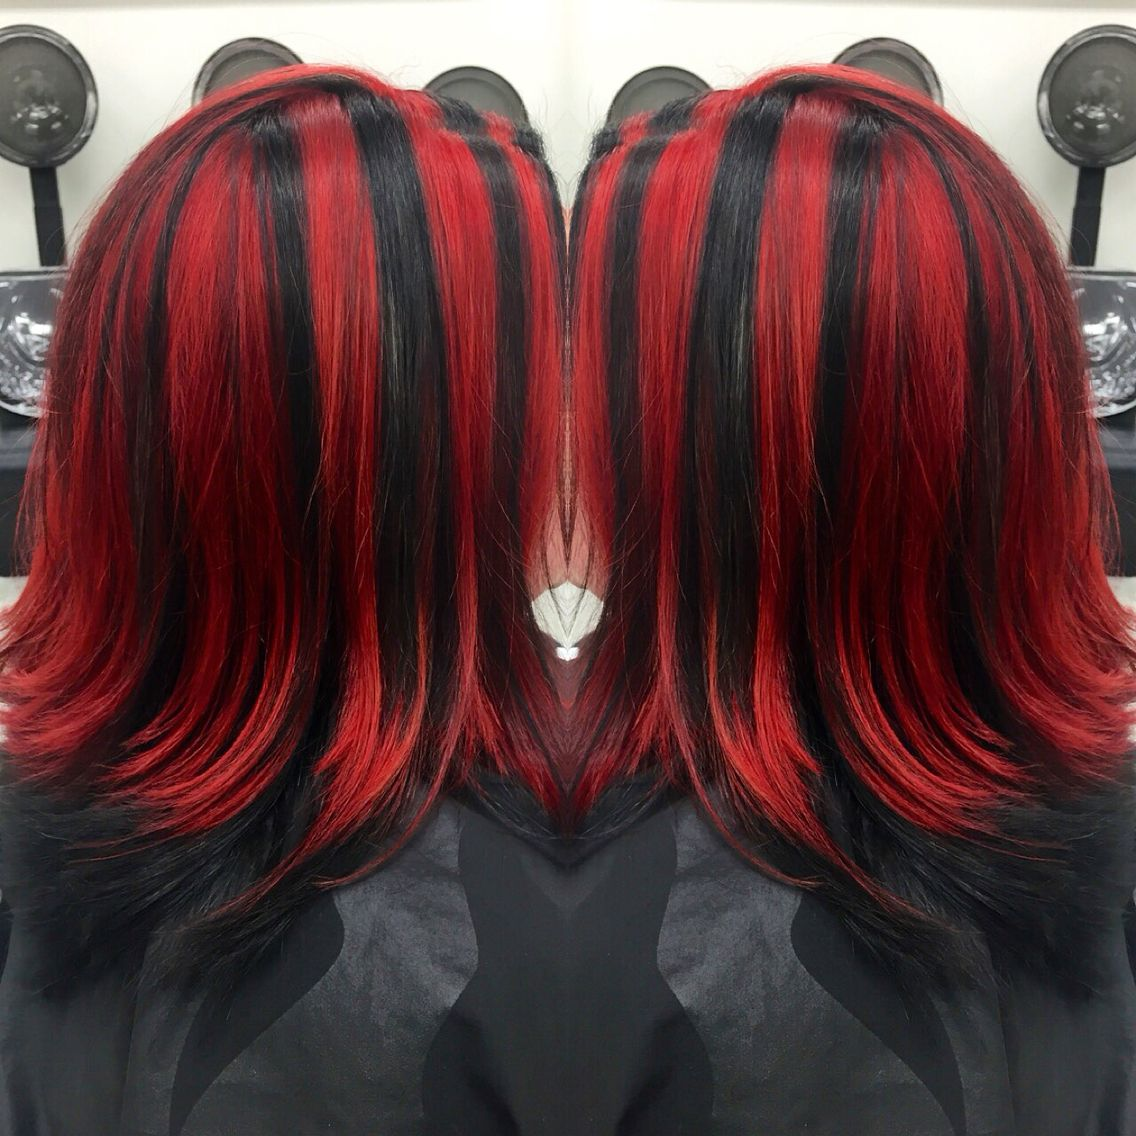 Red And Black Chunky Highlights Hair Highlights Hair Styles Red Ombre Hair